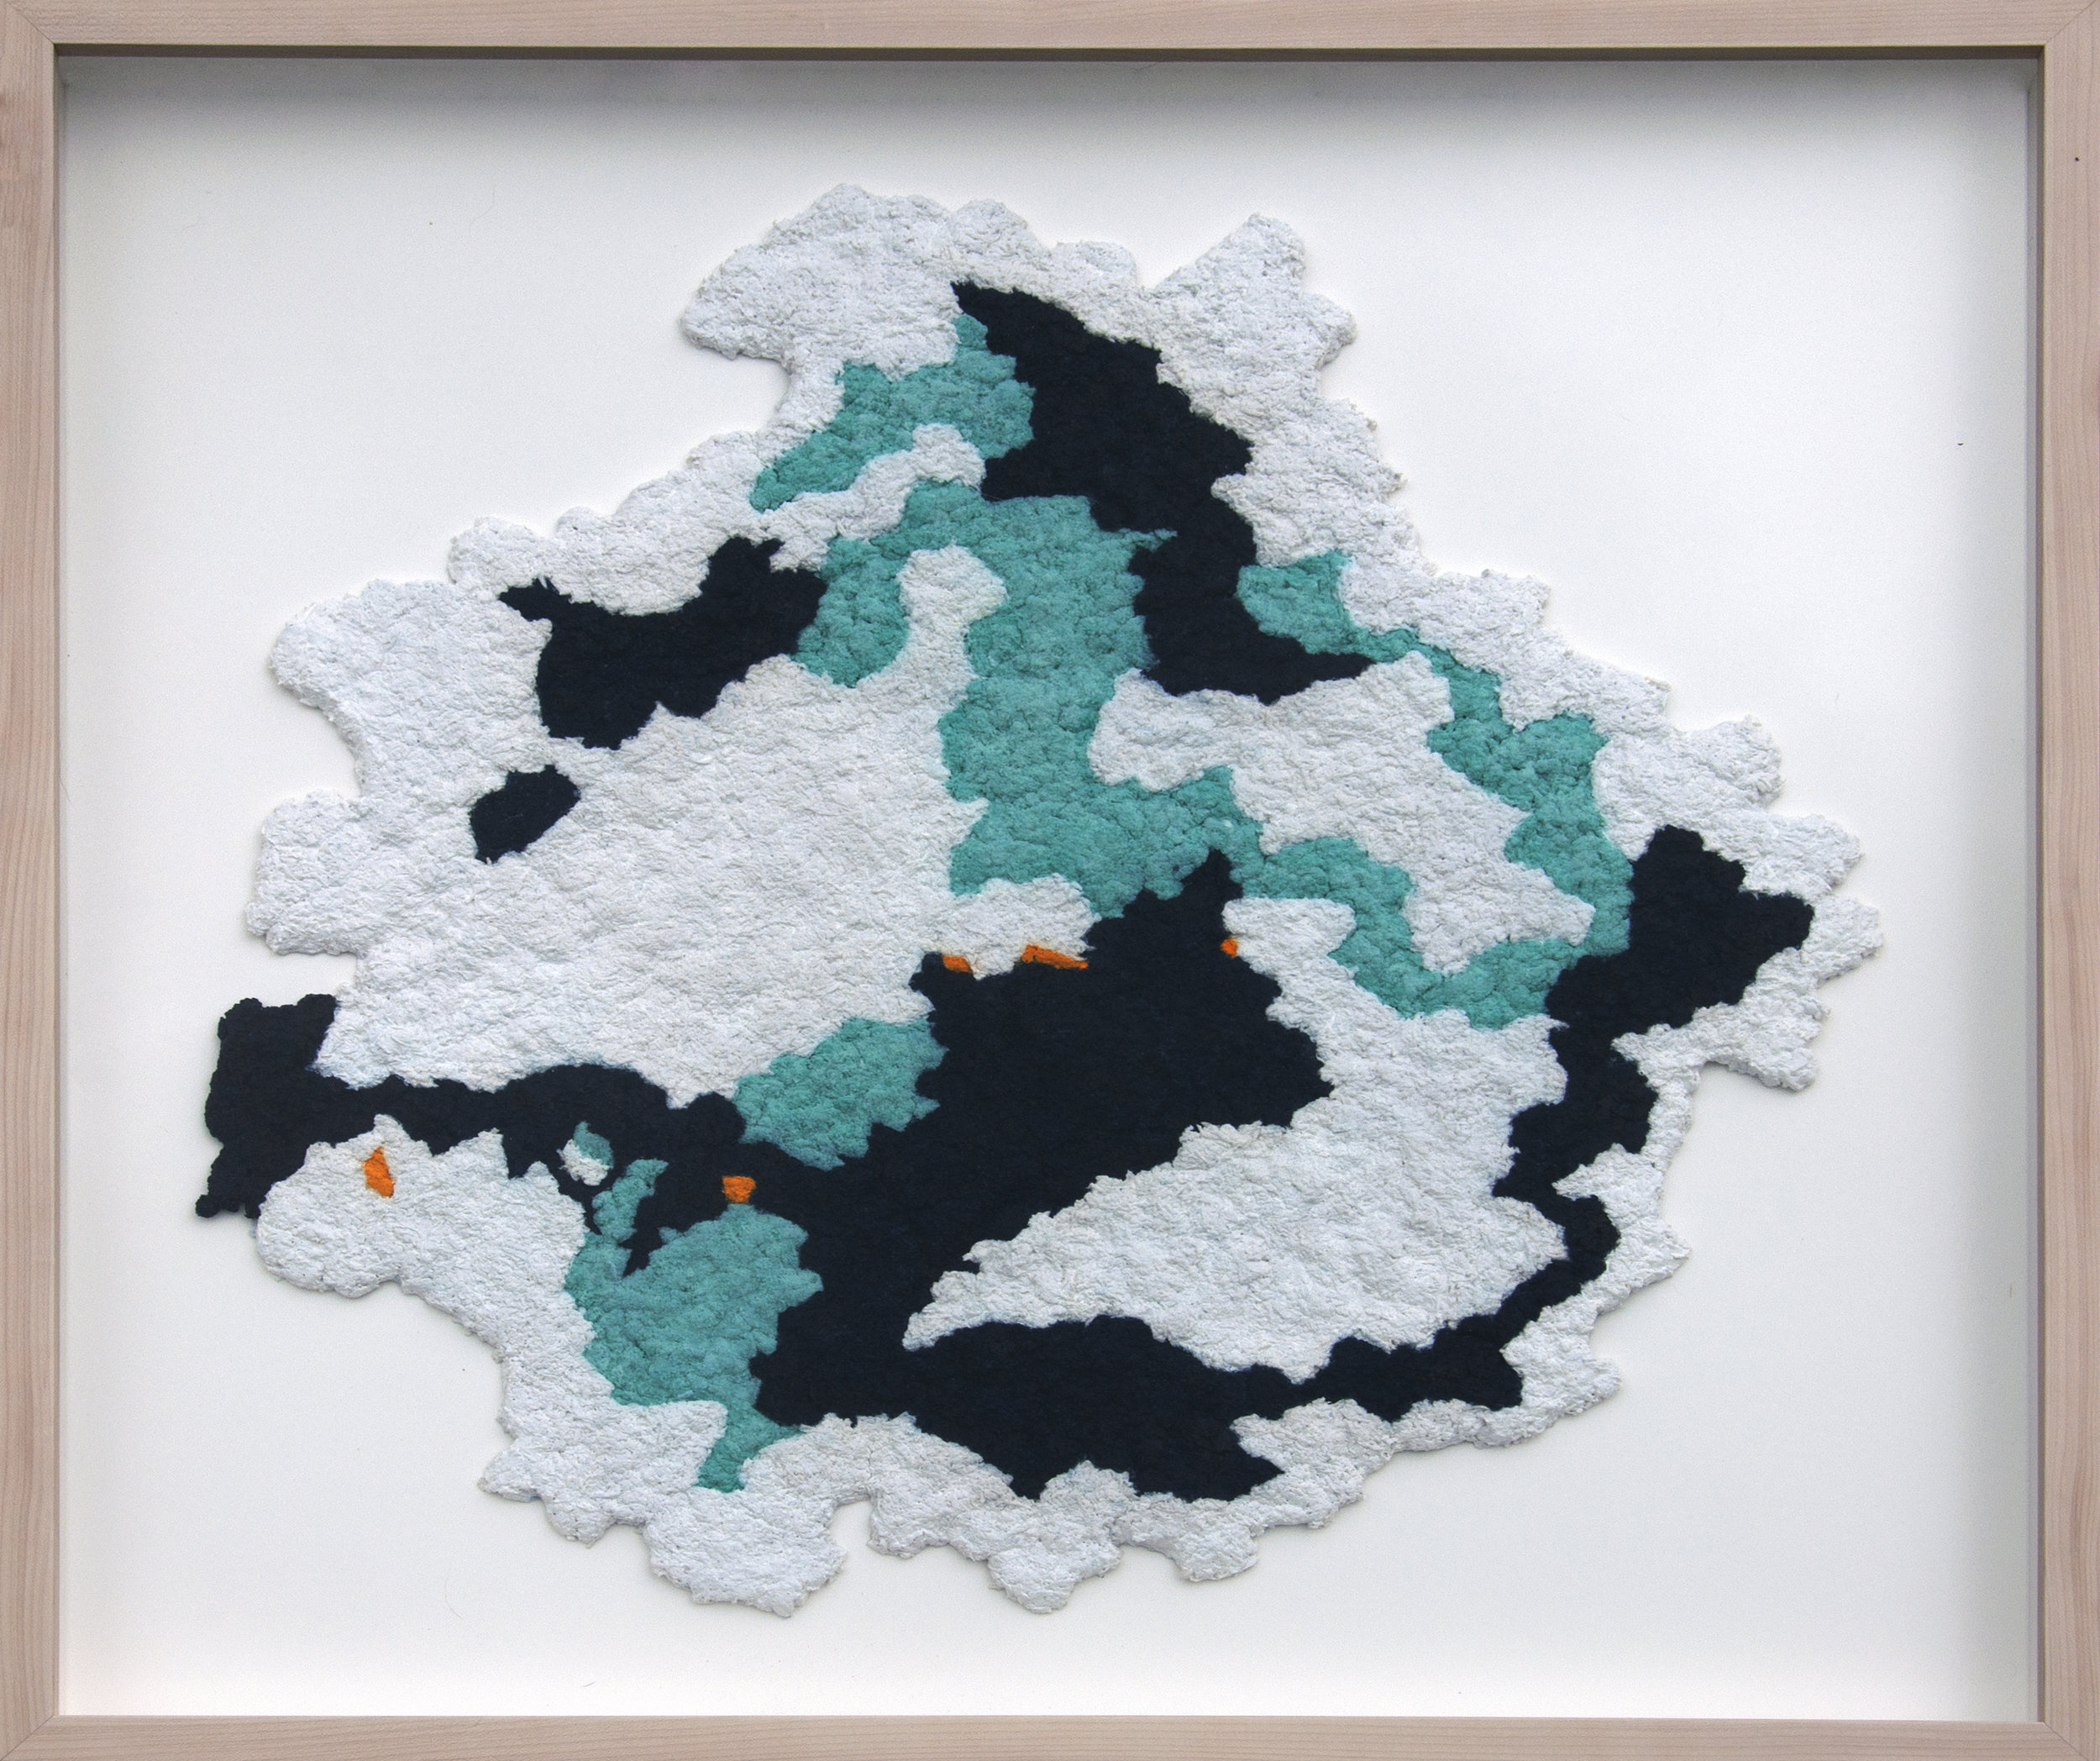 Kelly Moeykens_Atlas_2018_Paper Pulp,Ink,Salt_23 x 24_1720.jpg